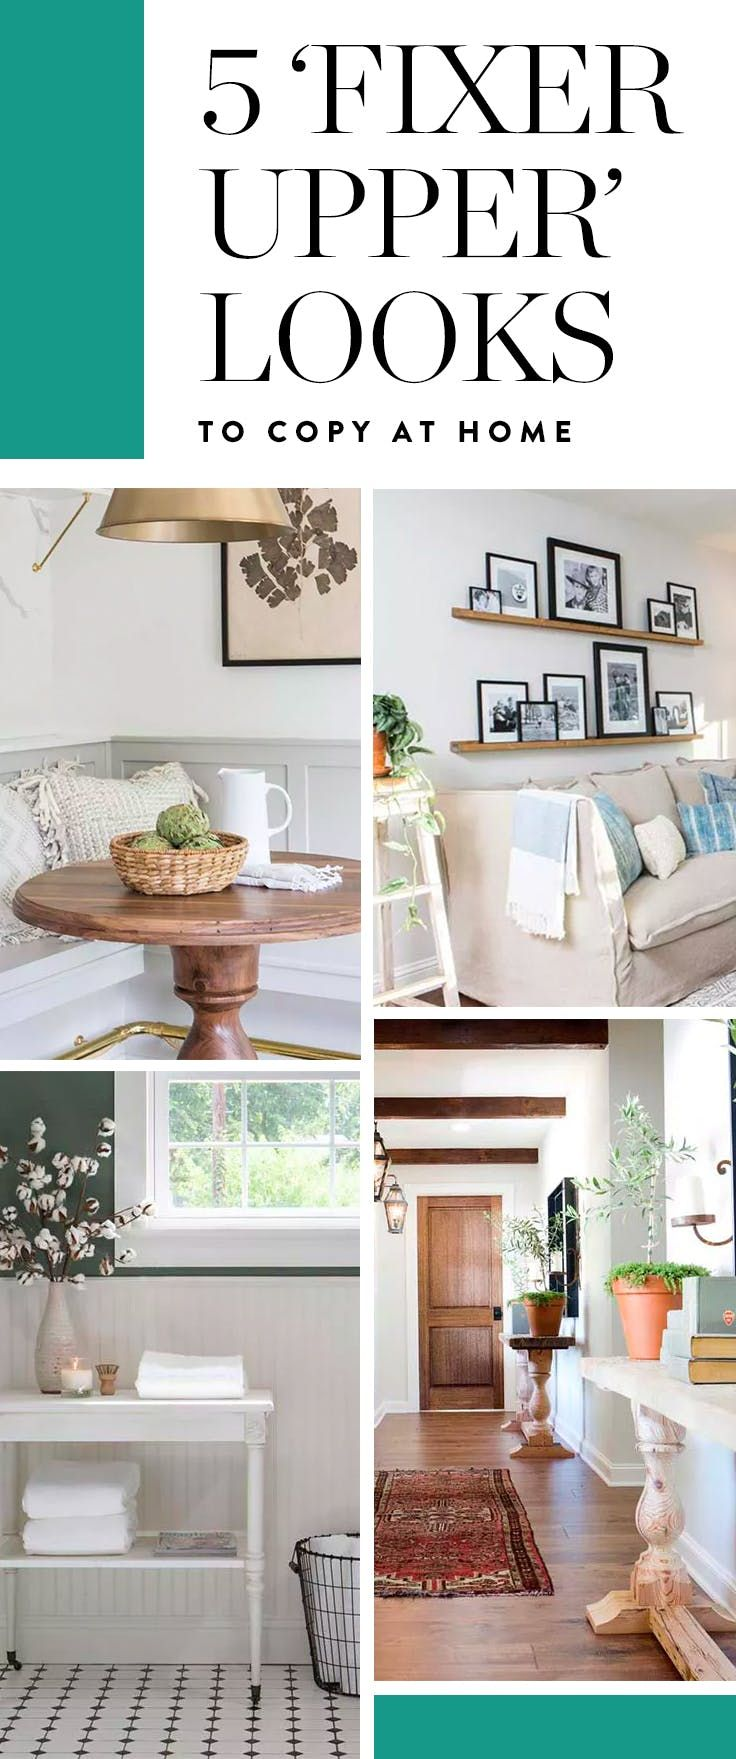 "5 'Fixer Upper' Looks You Can Totally Copy at Home is part of home Renovation Bedroom - To ease us through our series withdrawal, we curated five ""Fixer Upper"" decor schemes you can totally recreate chez vous—no shiplap install necessary"